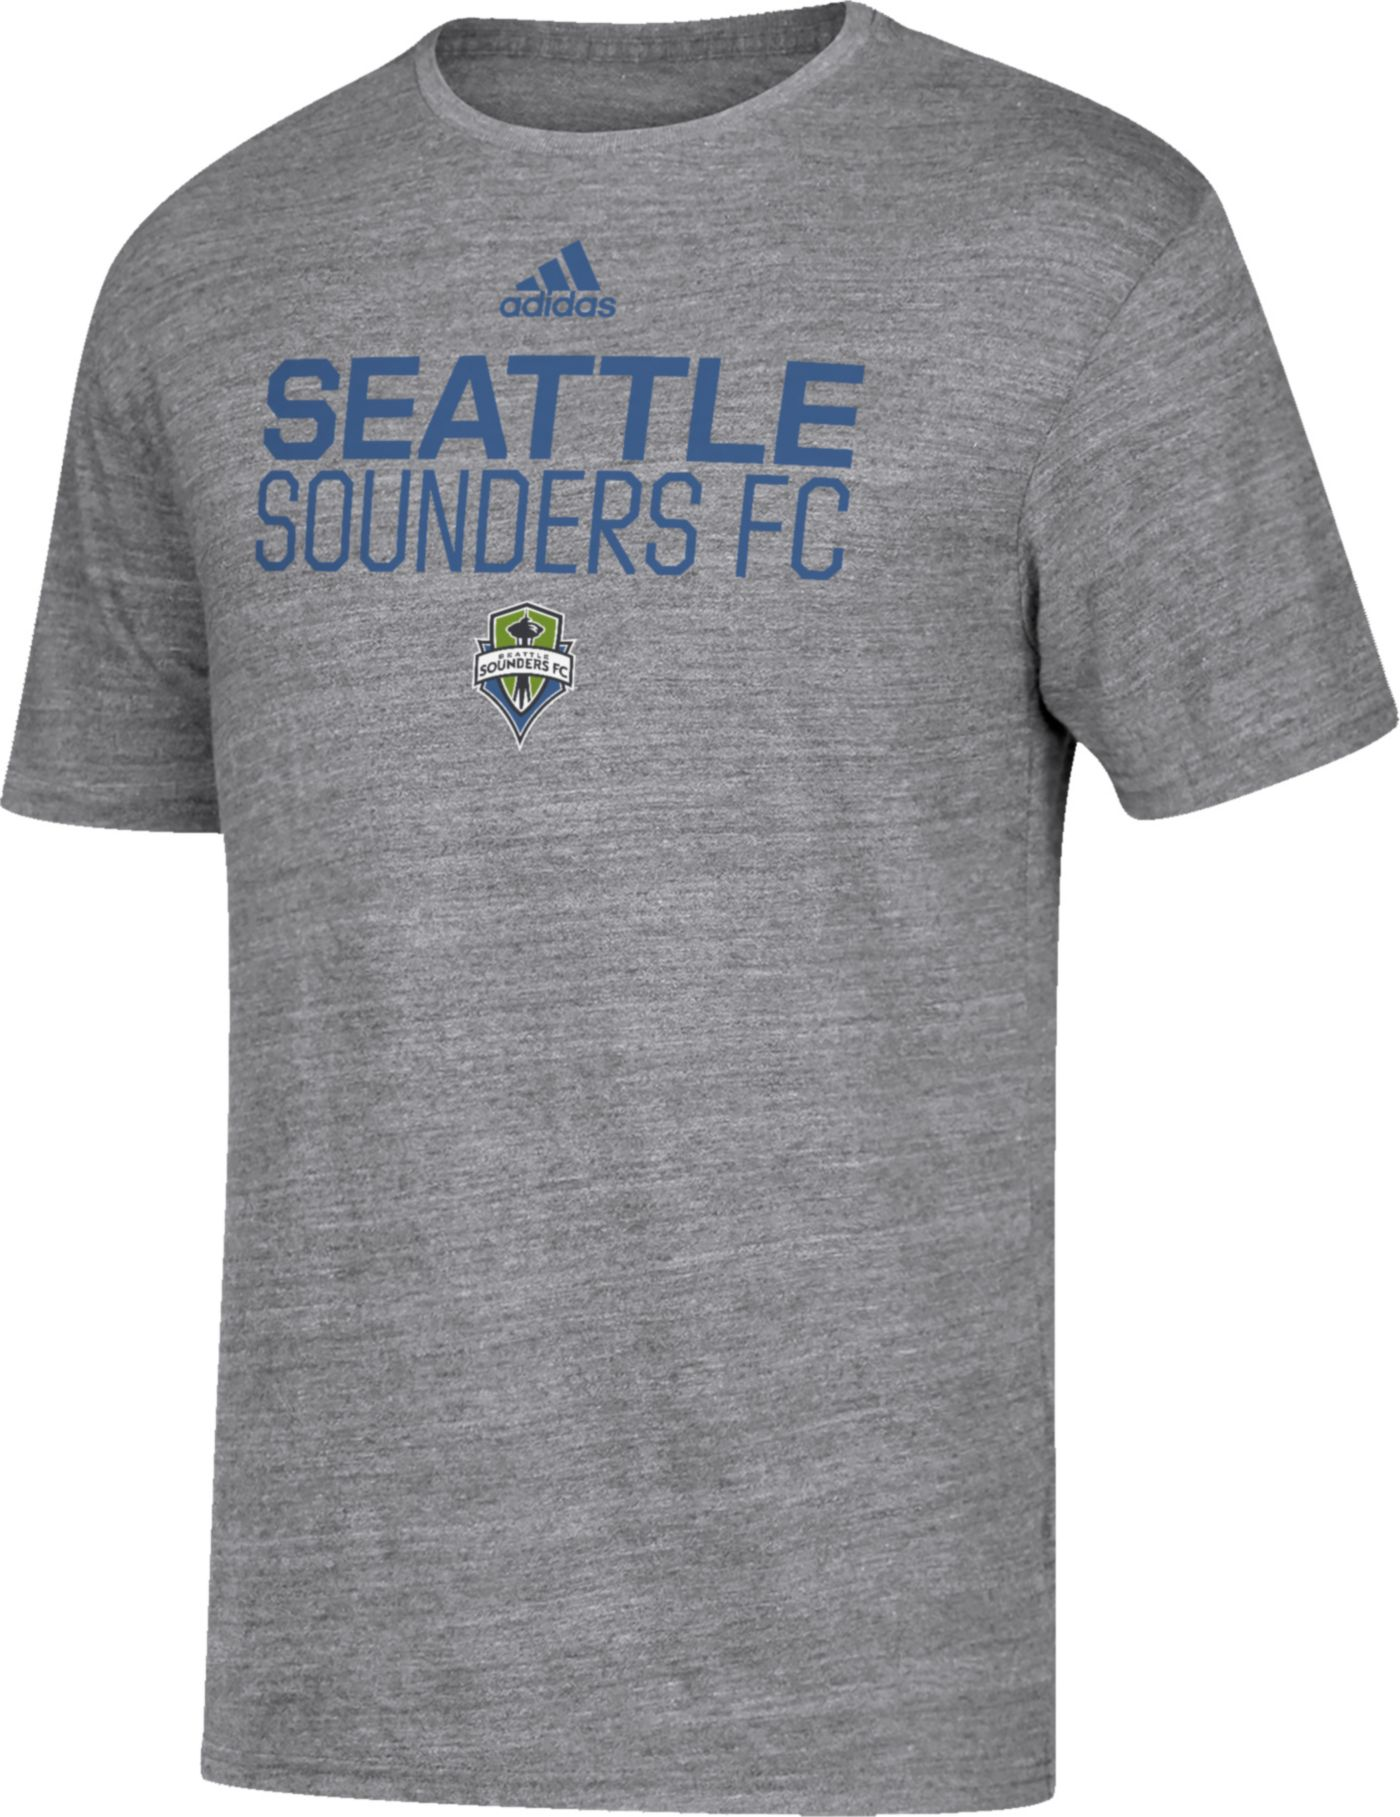 adidas Men's Seattle Sounders Locker Heather Grey Tri-Blend T-Shirt